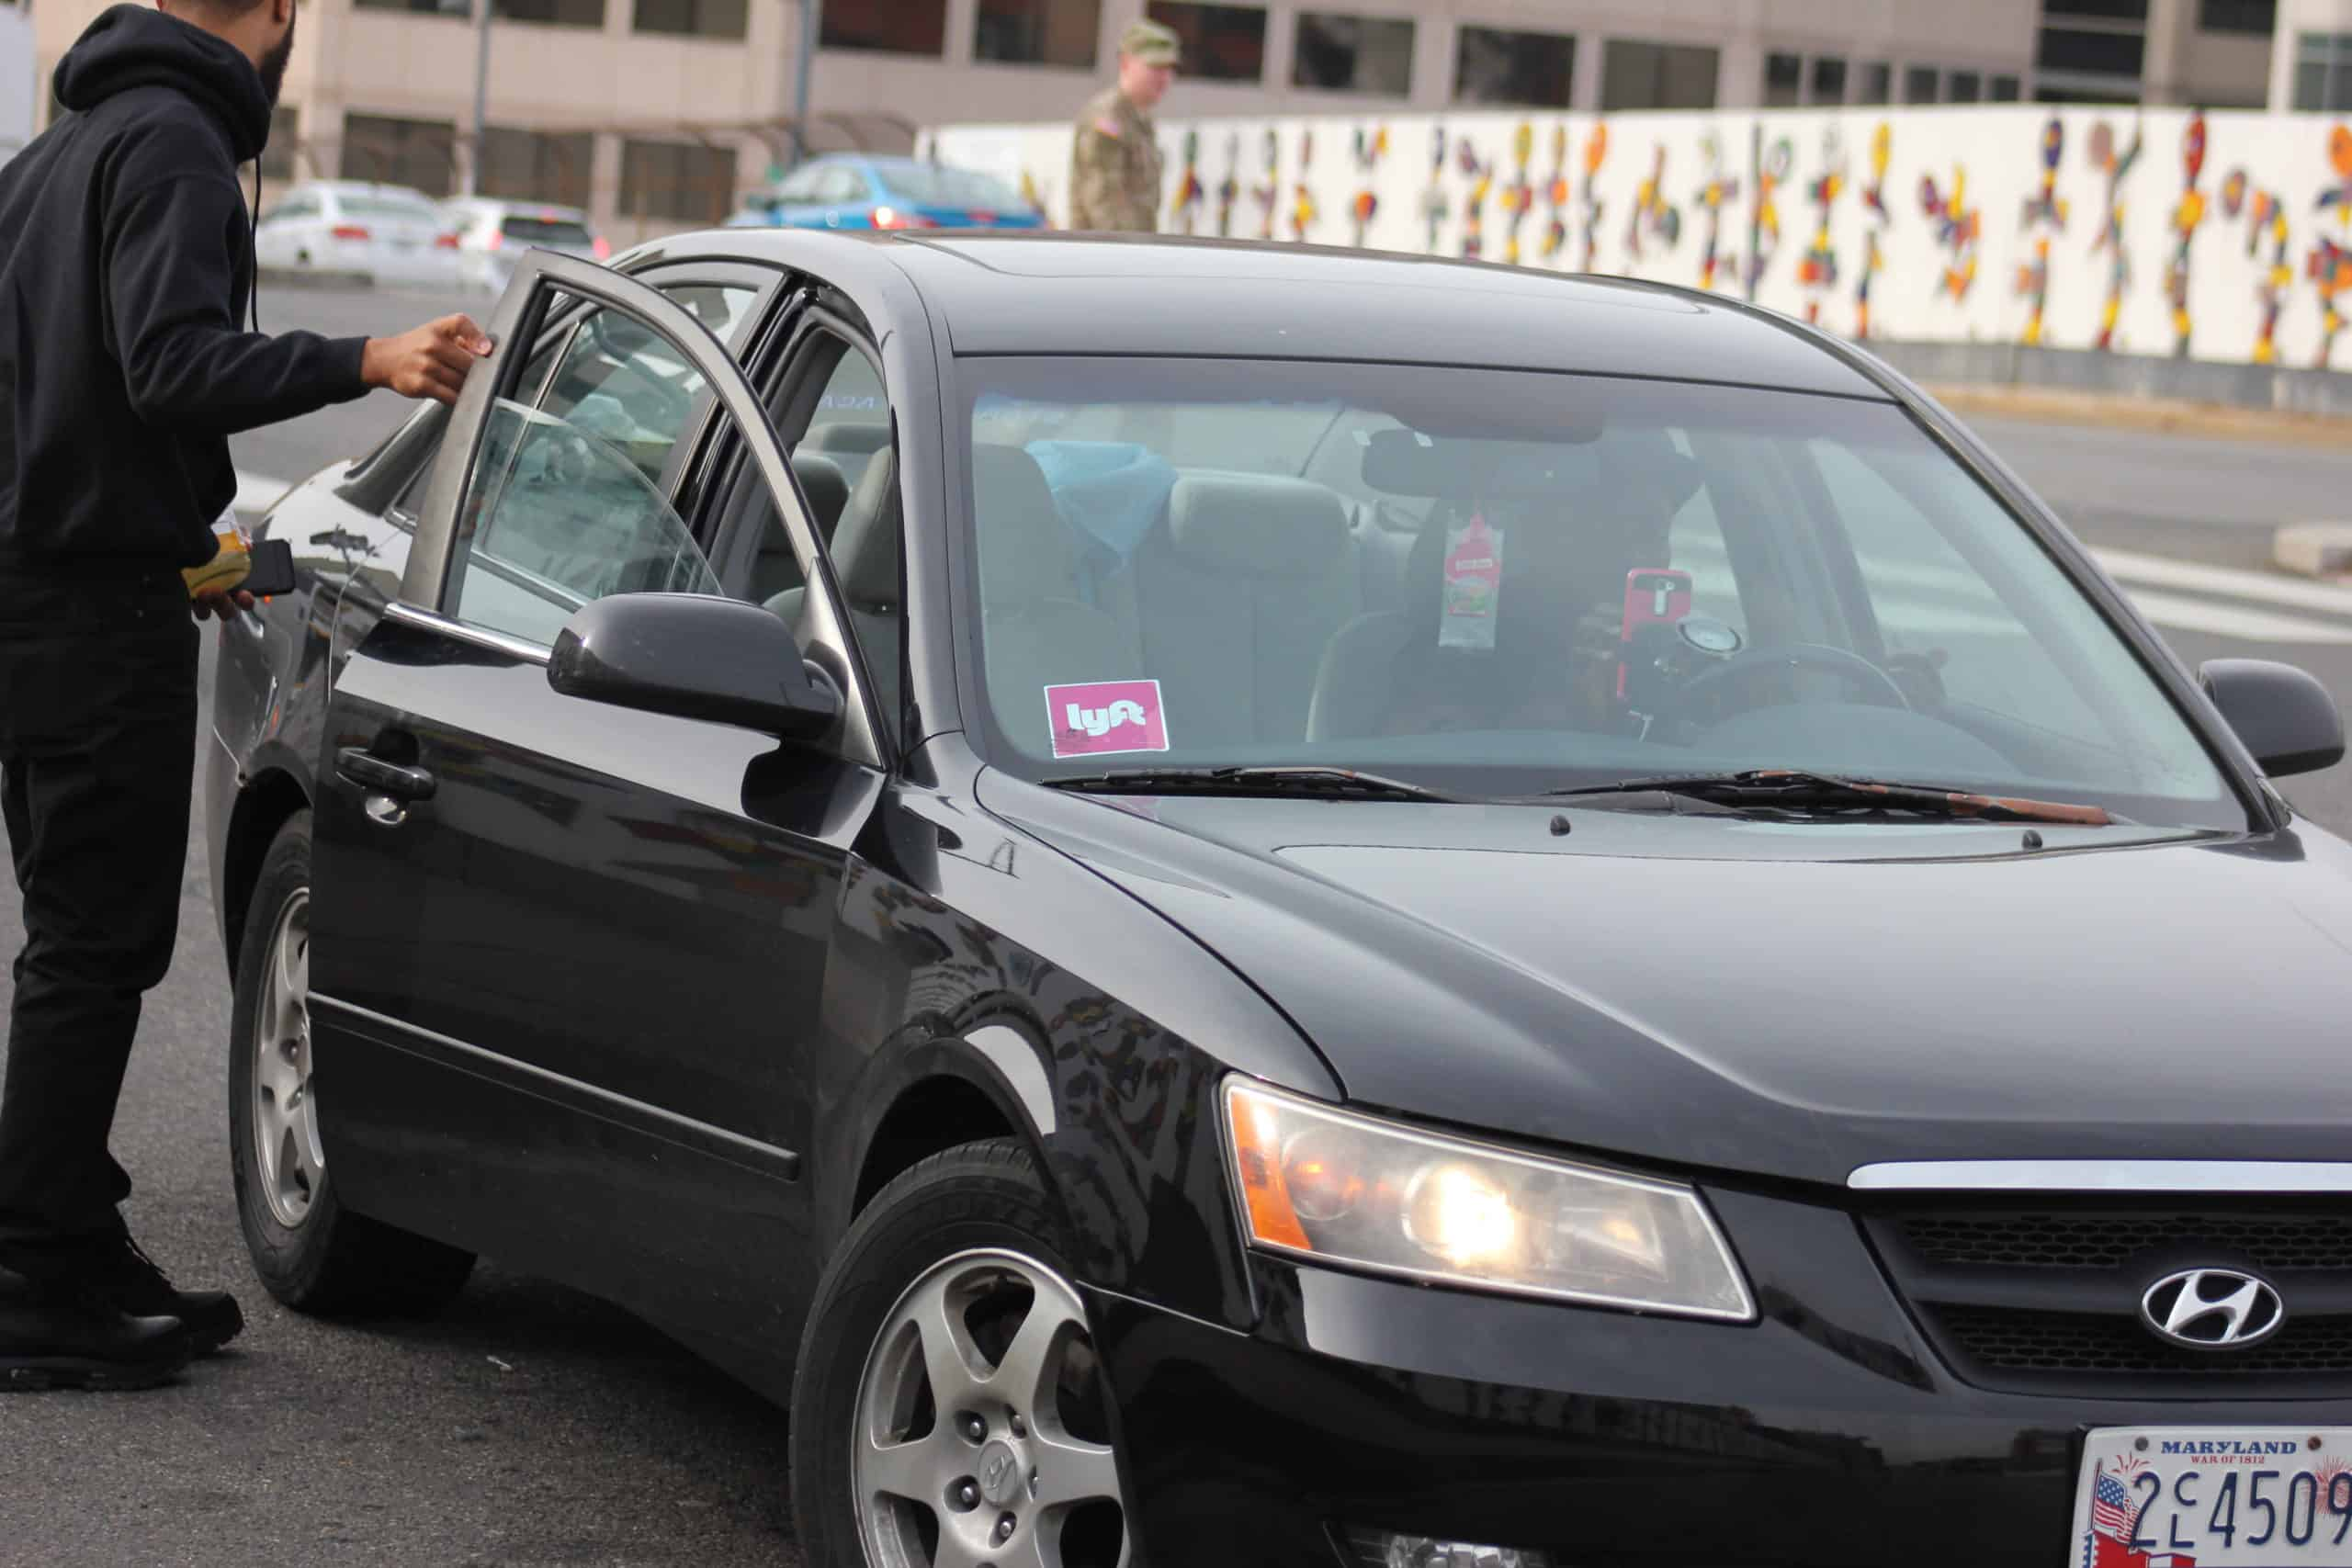 The Pitfalls of Uber and Lyft as Franchisors